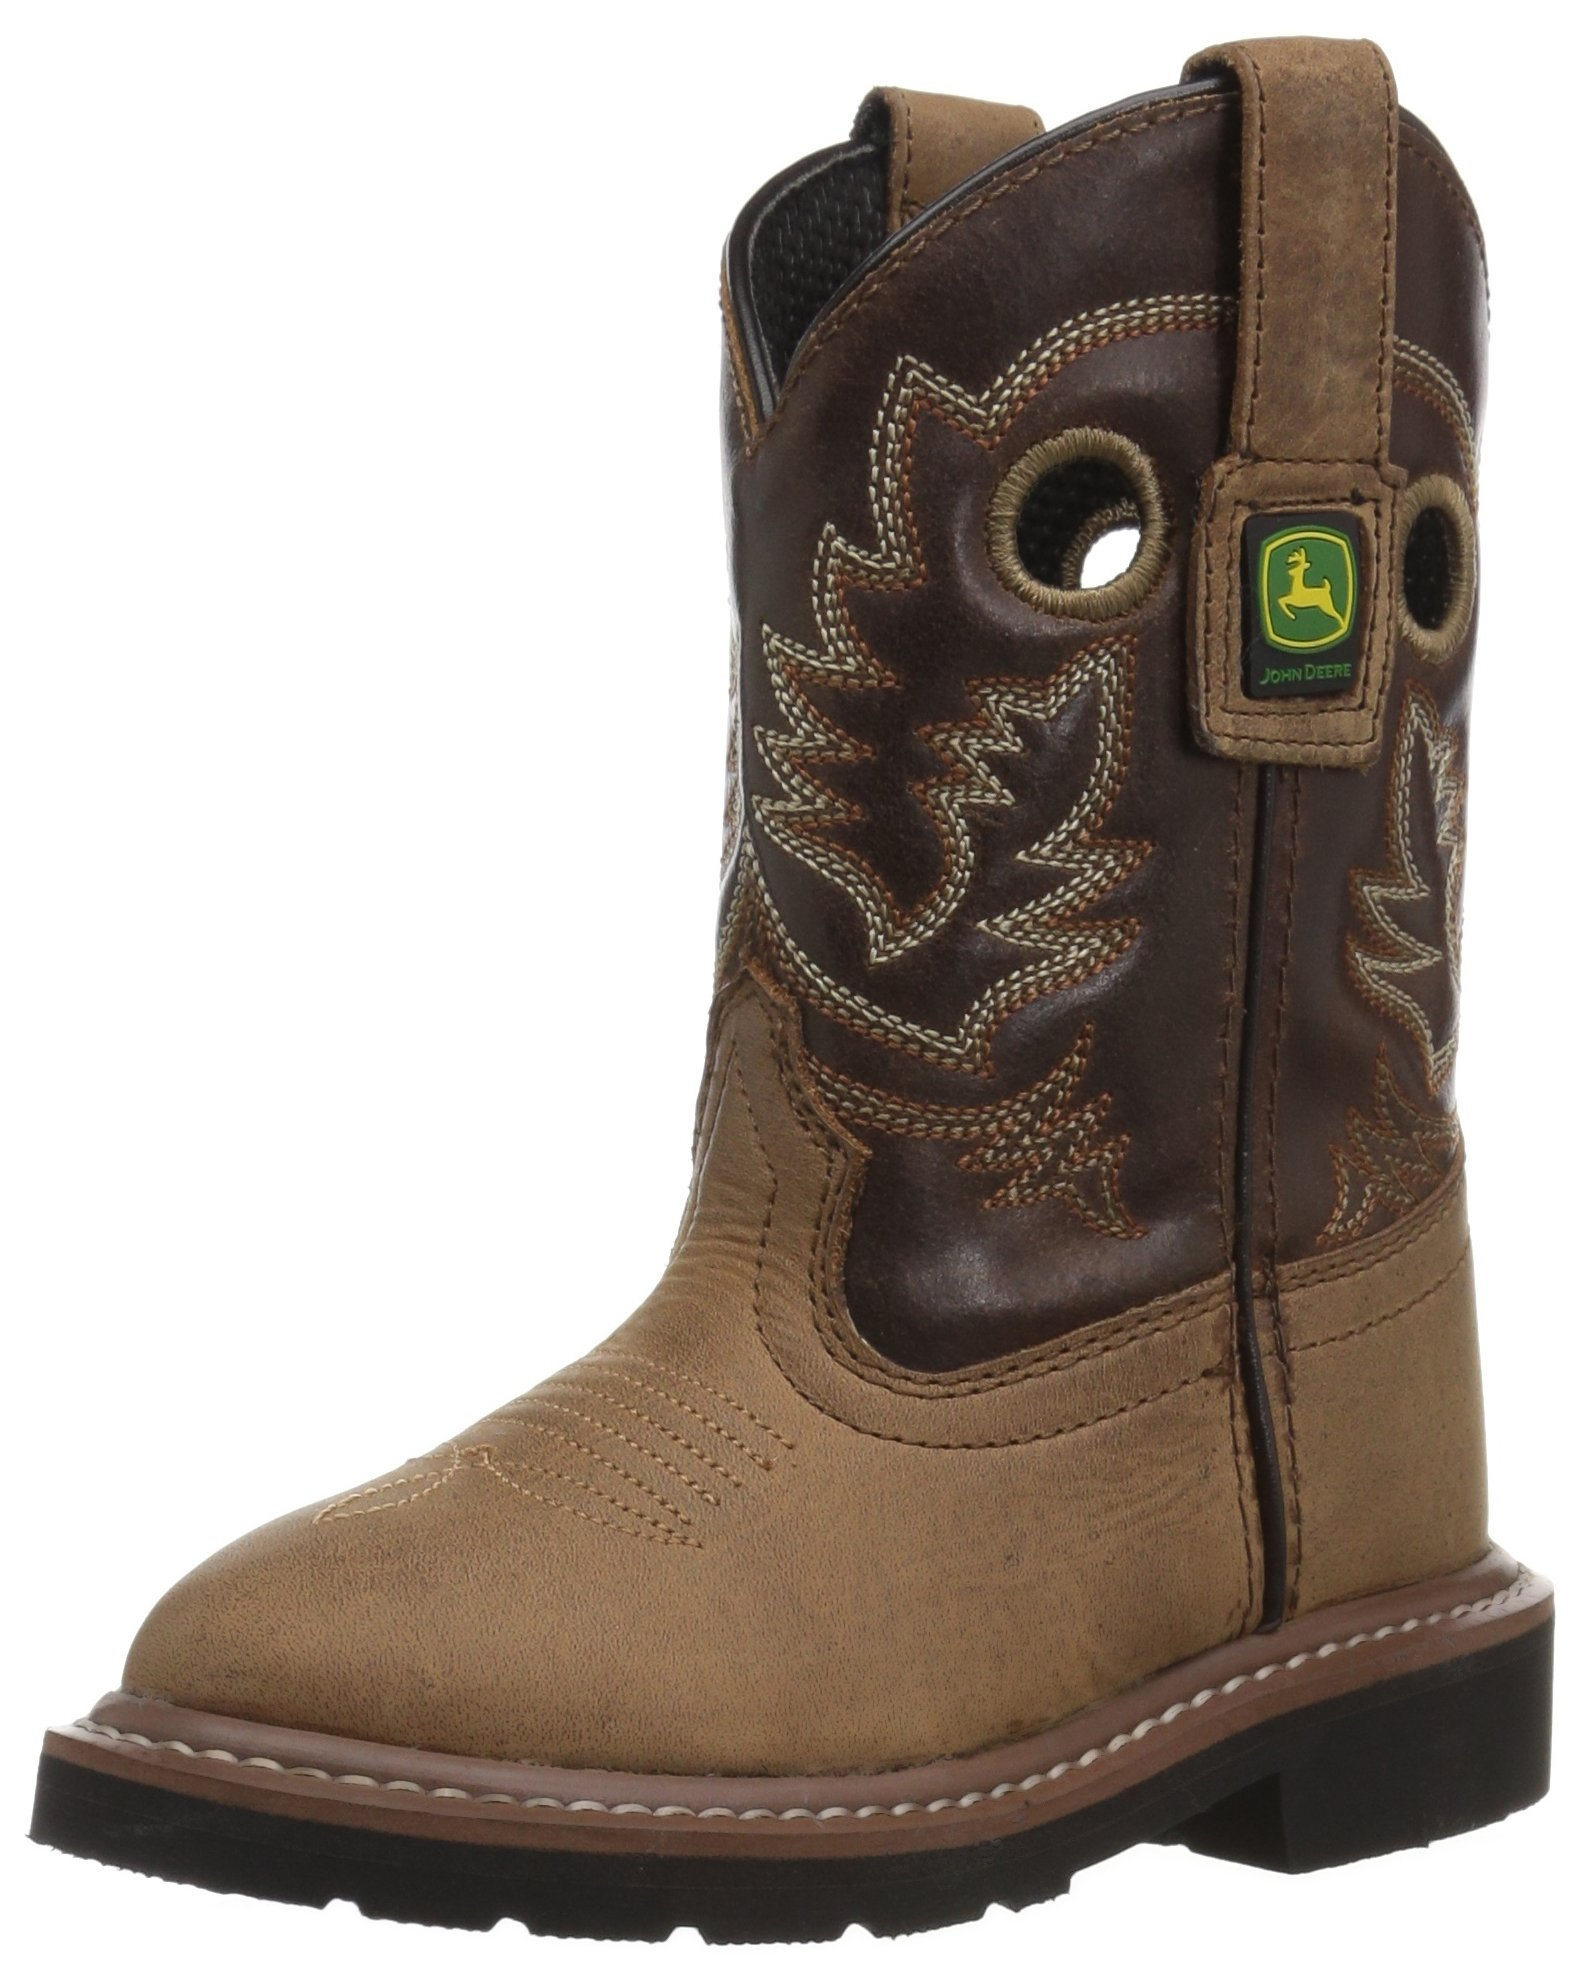 John Deere Unisex JD2502 Western Boot, Brown, 3 Medium US Little Kid